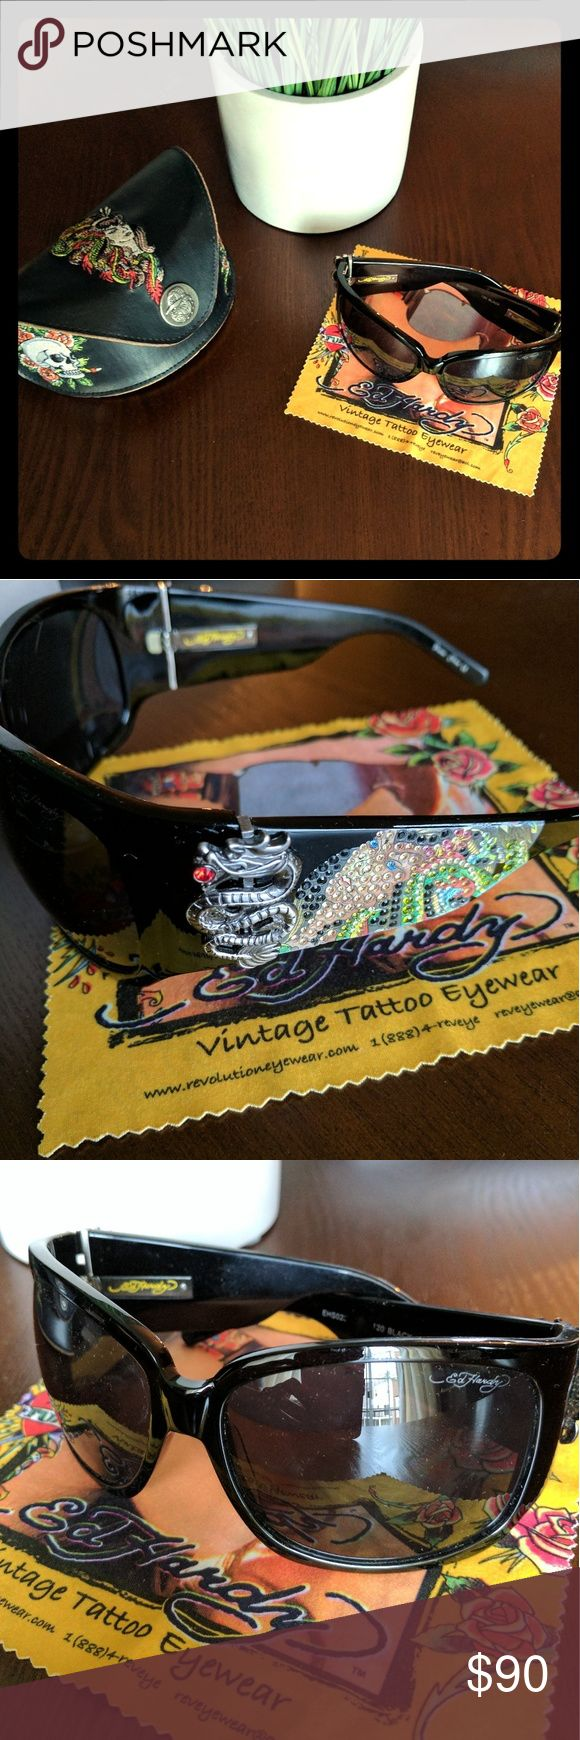 """Ed Hardy Dragon / Studded Sunglasses Authentic Ed Hardy Tattoo Eyewear Sunglasses in """"Dragon"""" (Style EHS-025). Style has rhinestone design on stems with metal dragon and red gem eye. Comes with original embroidered case and cleaning cloth. Great condition. Ed Hardy Accessories Sunglasses"""